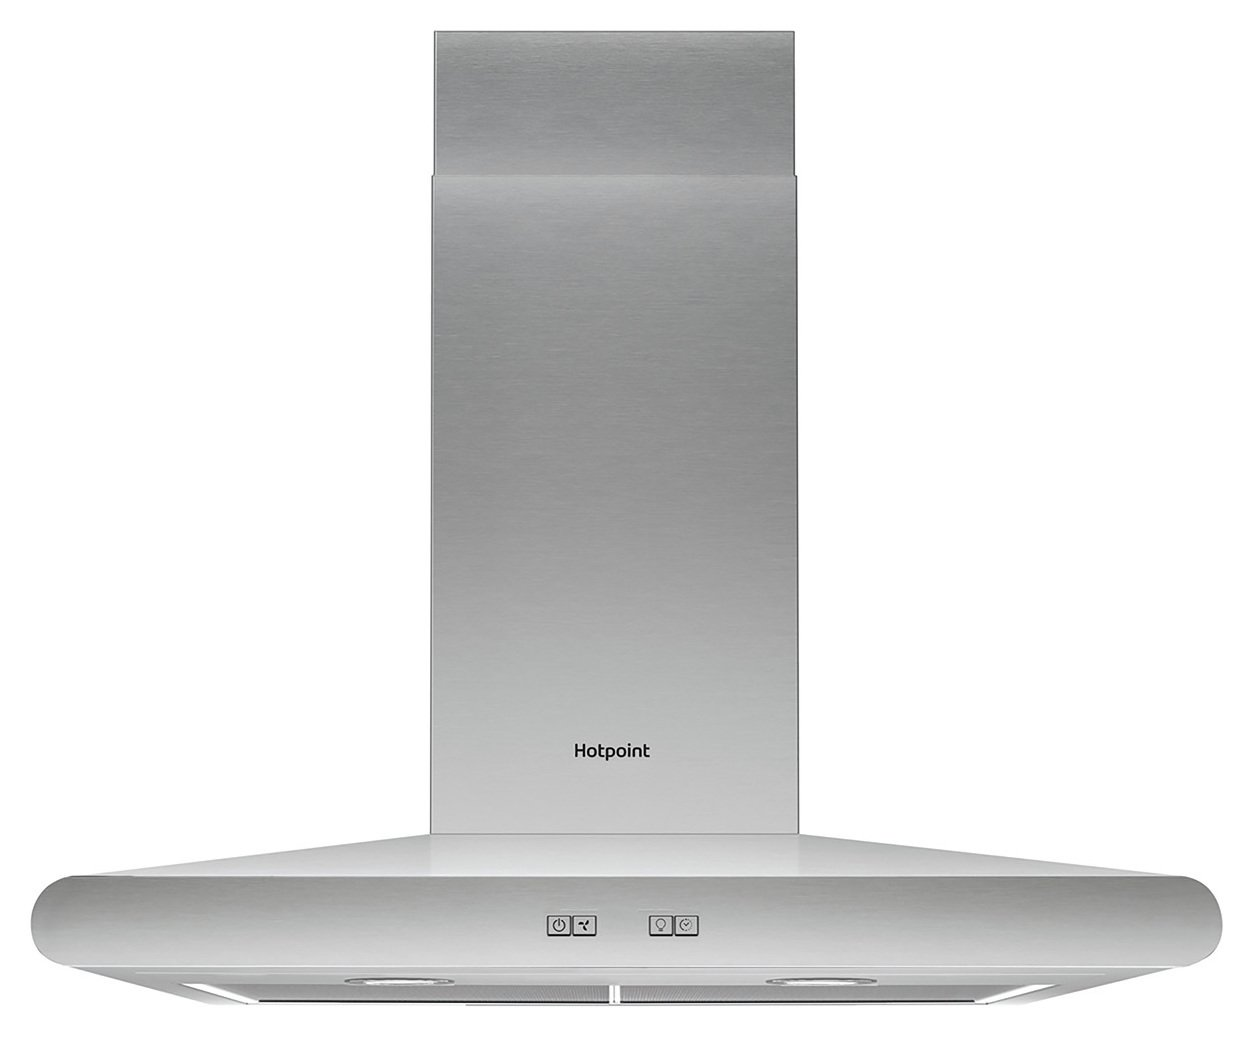 Hotpoint PHC6.7FLBIX 60cm Cooker Hood - Stainless Steel